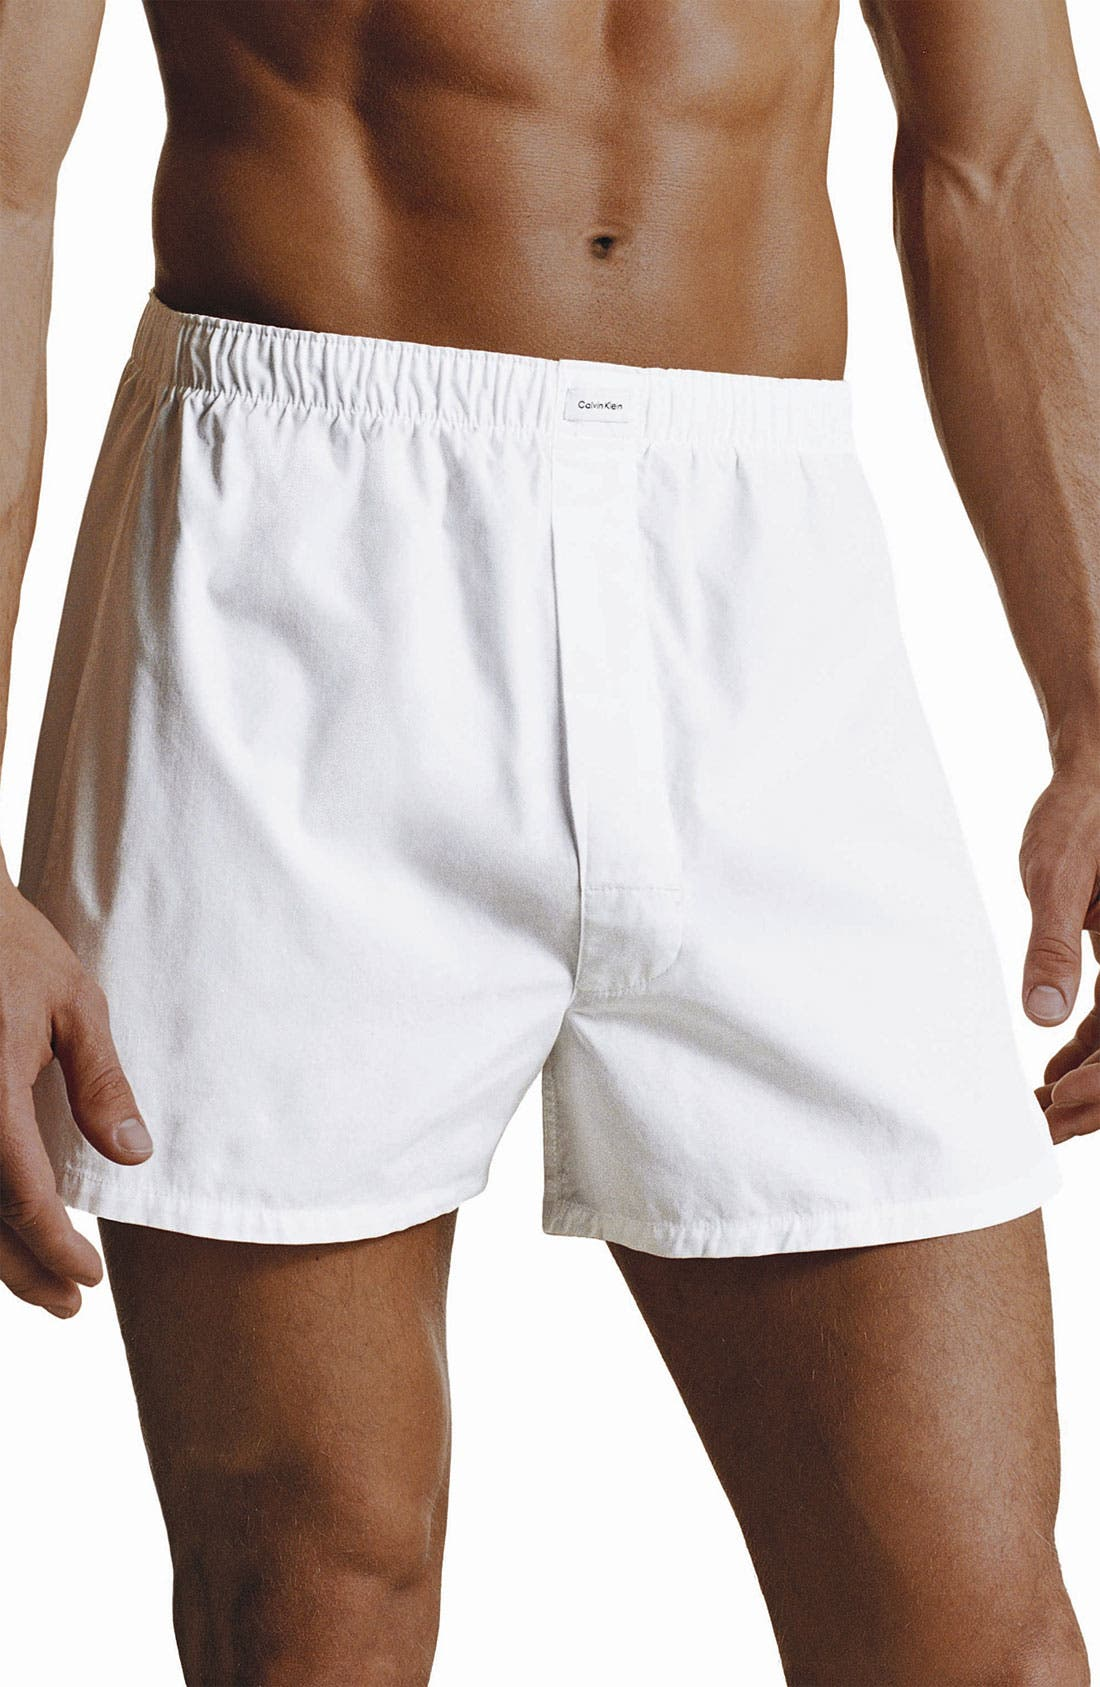 Alternate Image 1 Selected - Calvin Klein 'U1700' Traditional Fit Boxers